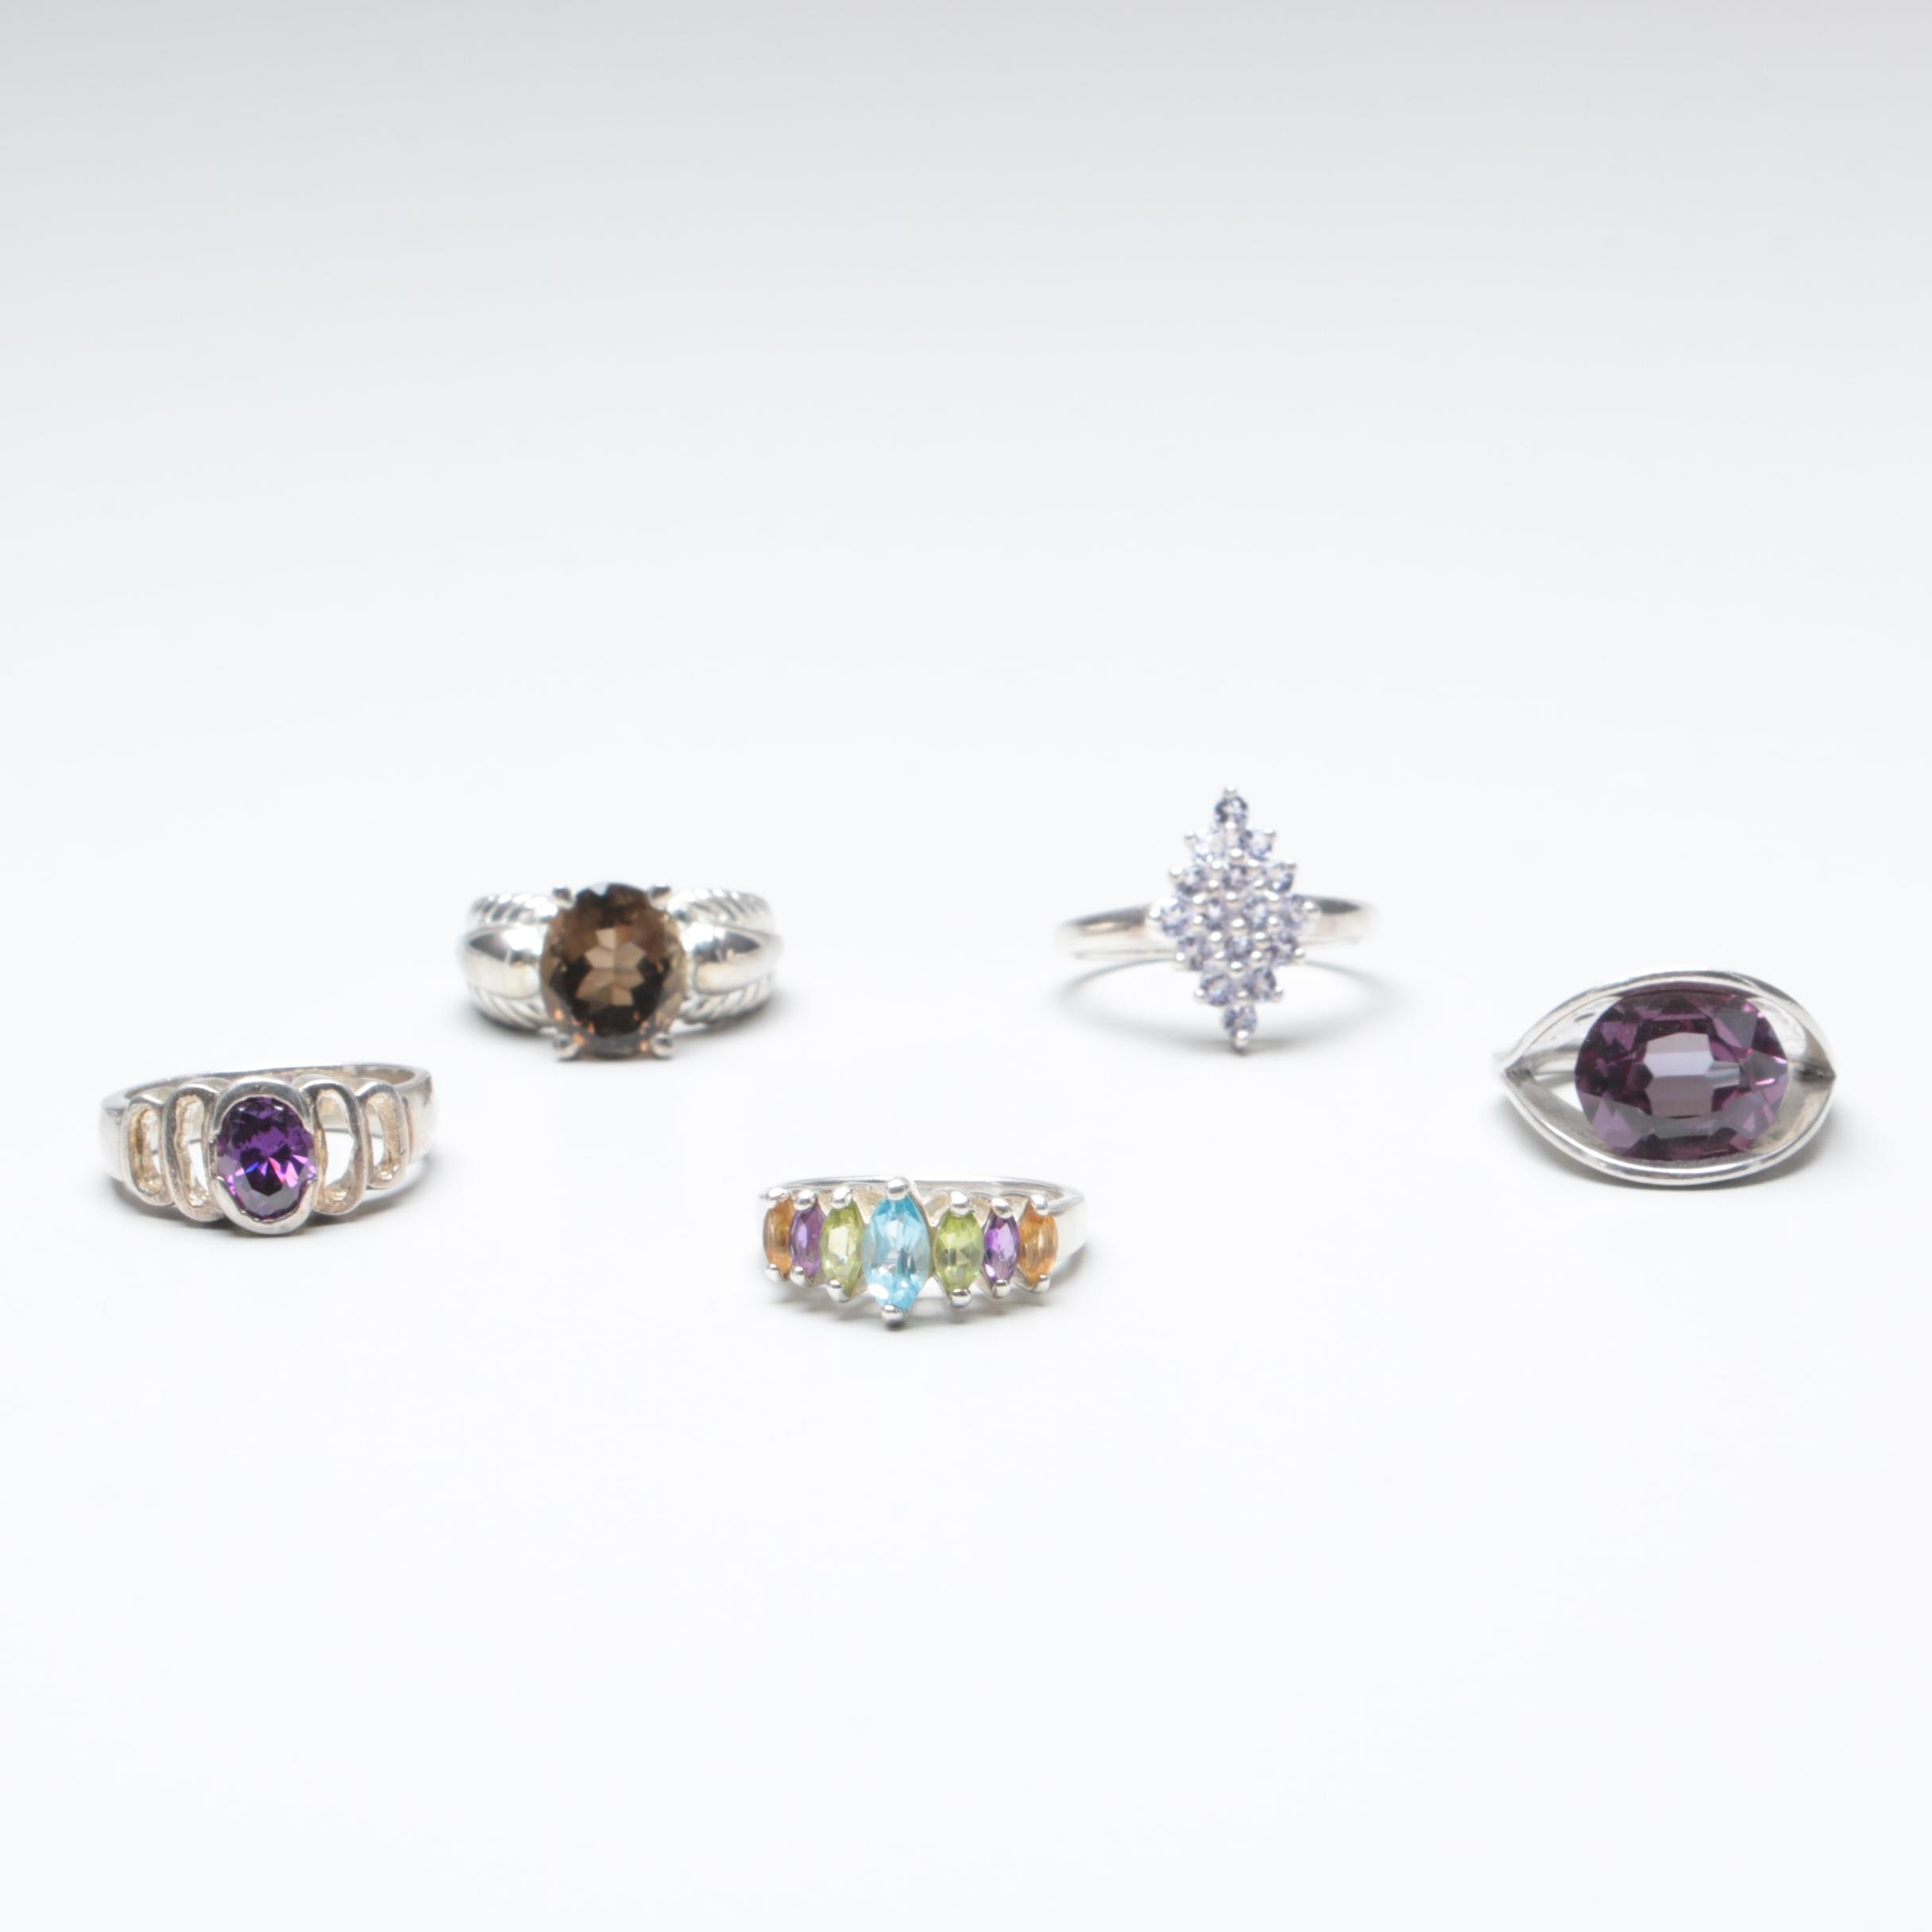 Sterling Silver Rings Including Peridot, Blue Topaz, and Amethyst